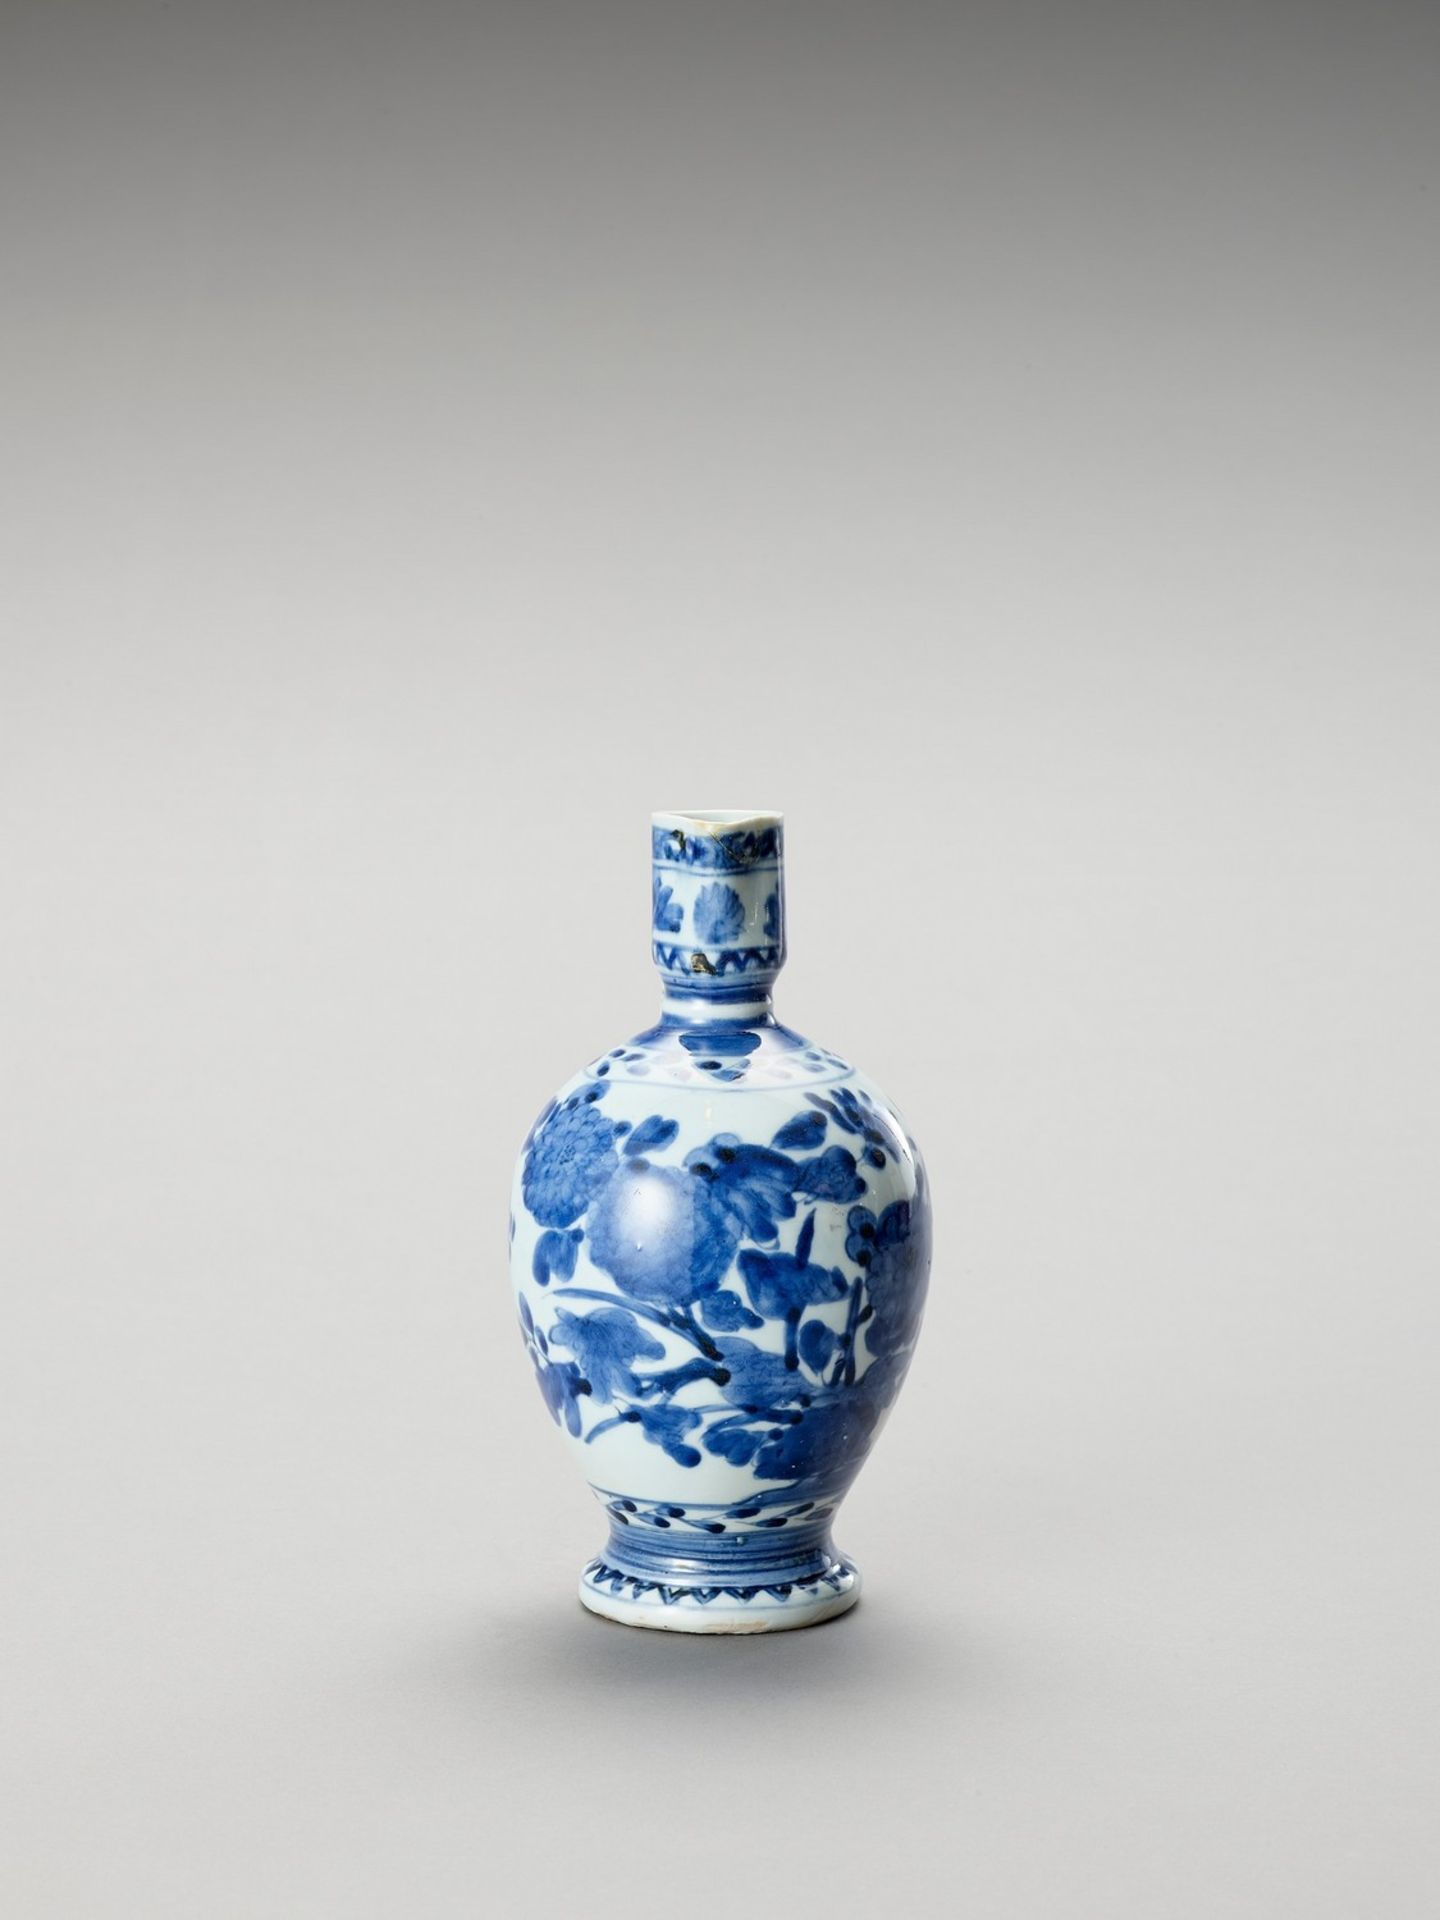 A BLUE AND WHITE PORCELAIN JUG - Image 2 of 7